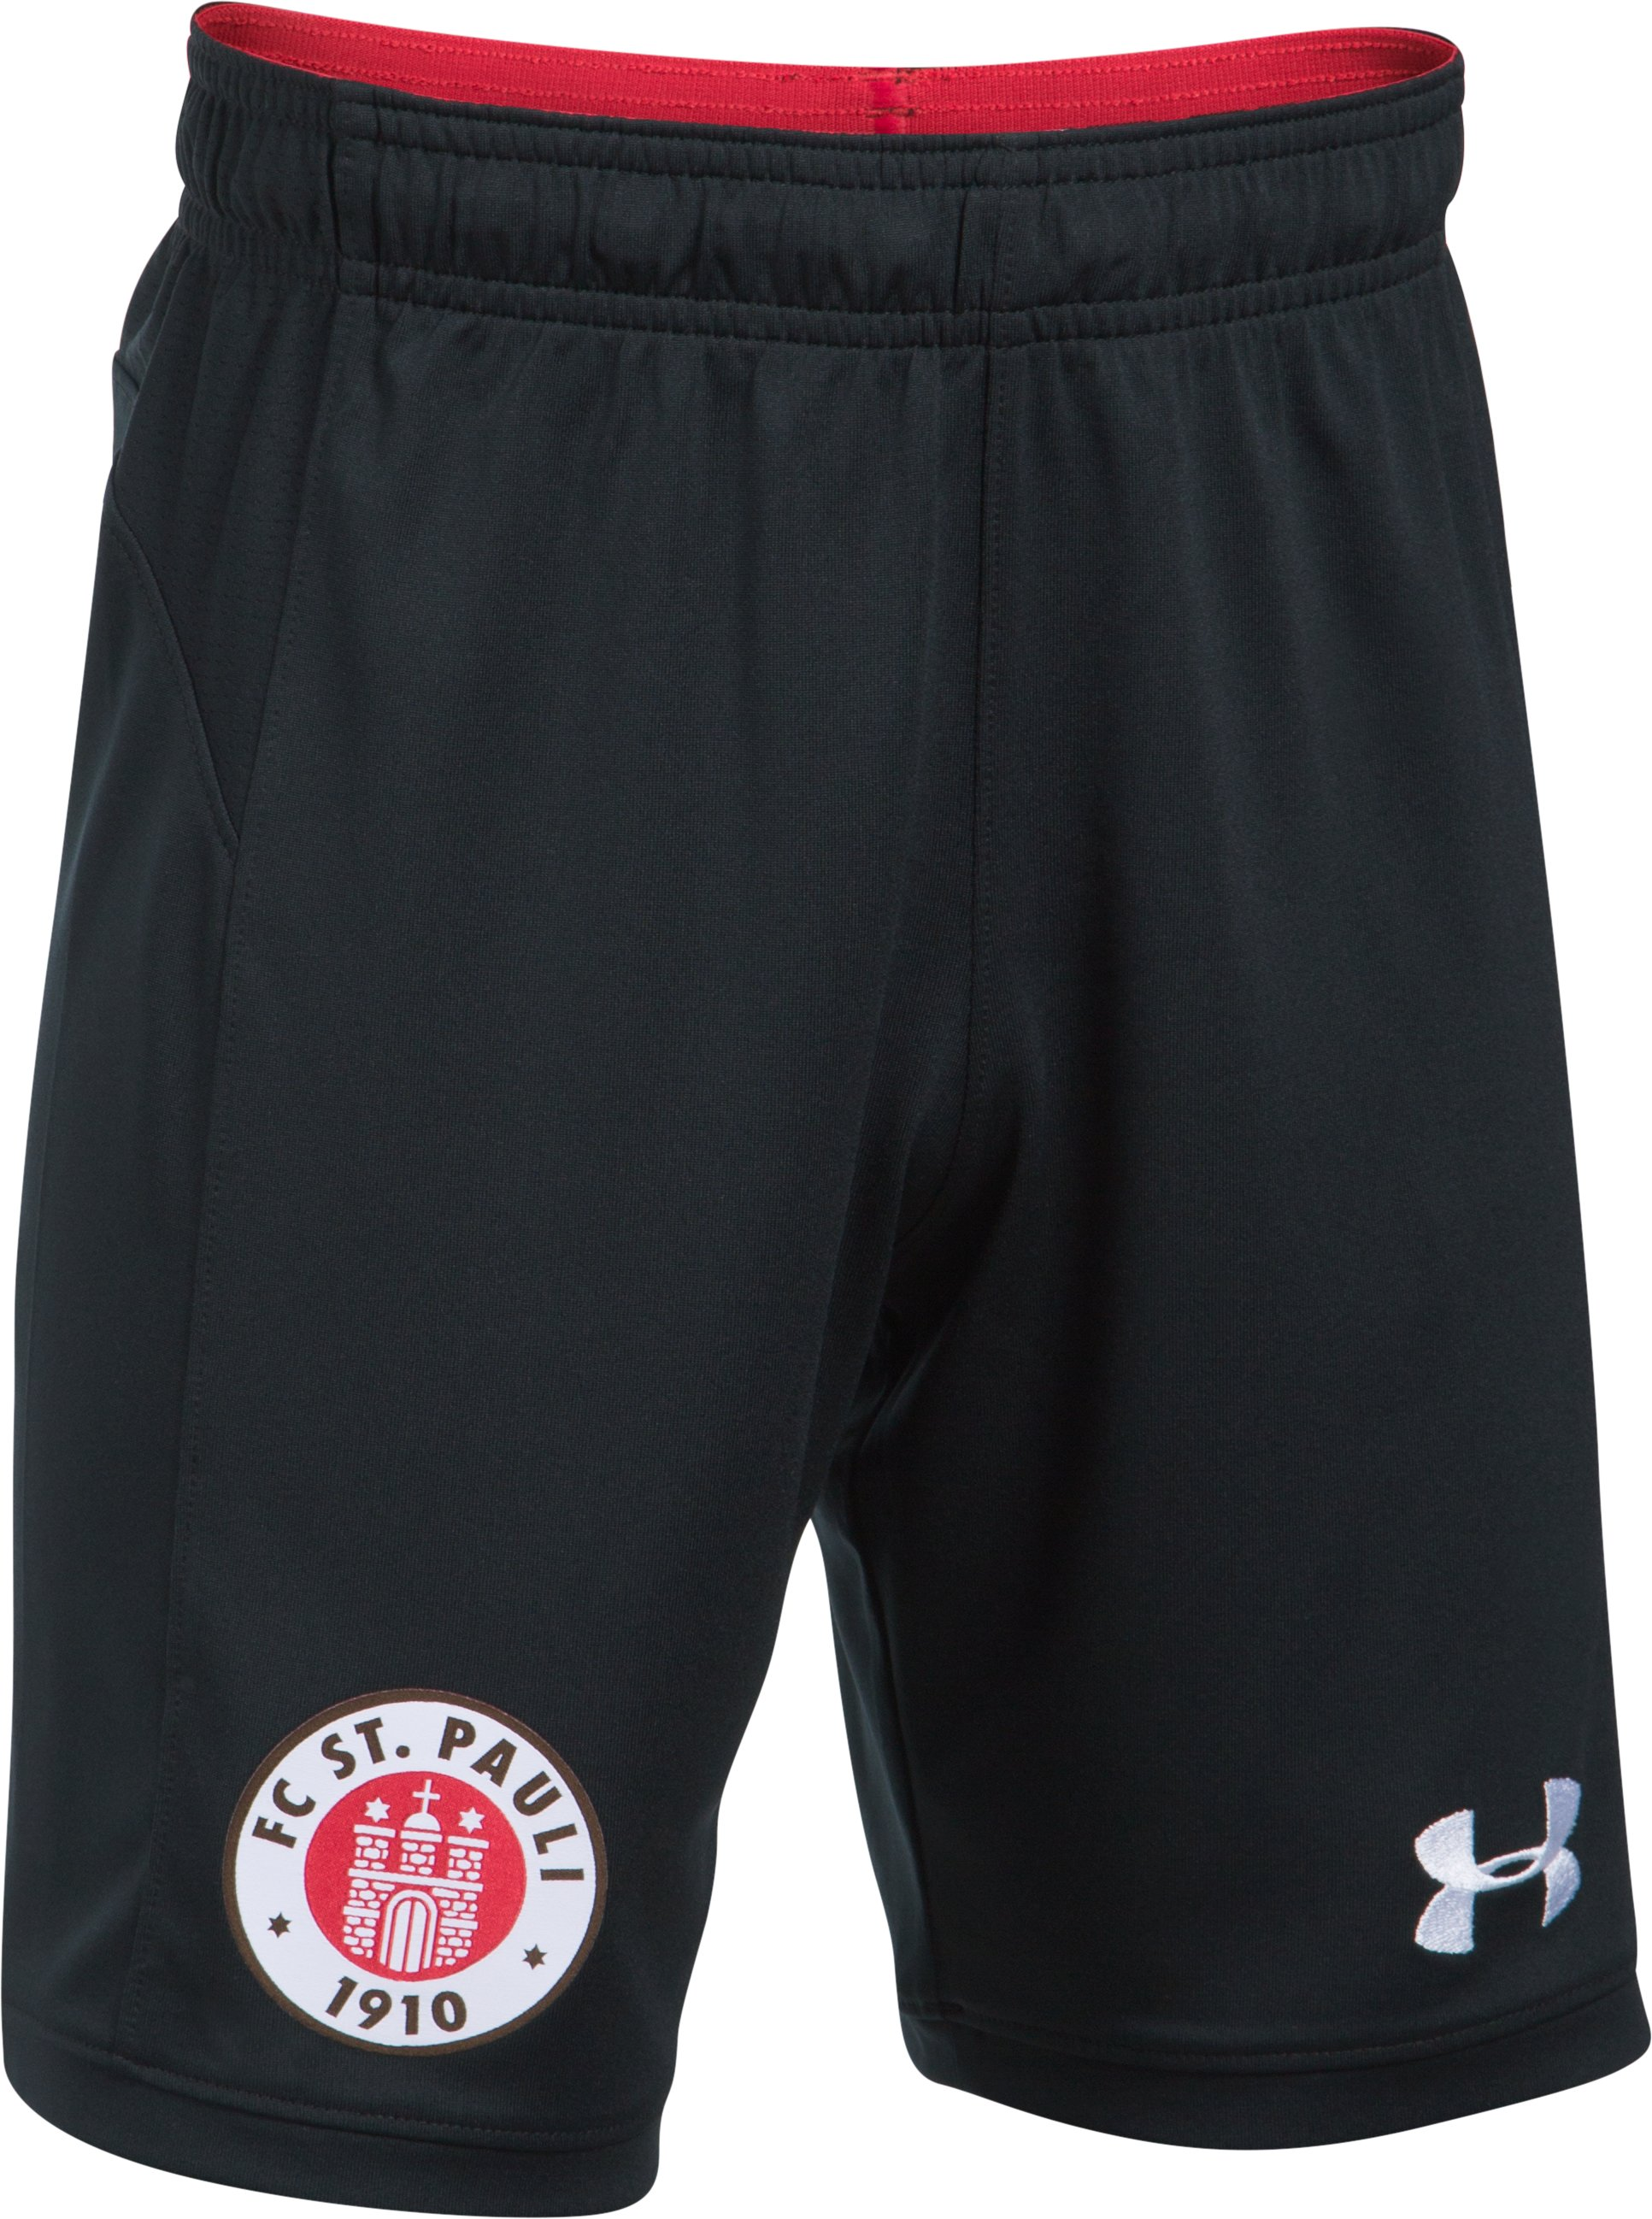 Kids' St. Pauli Rep Inset Shorts, Black